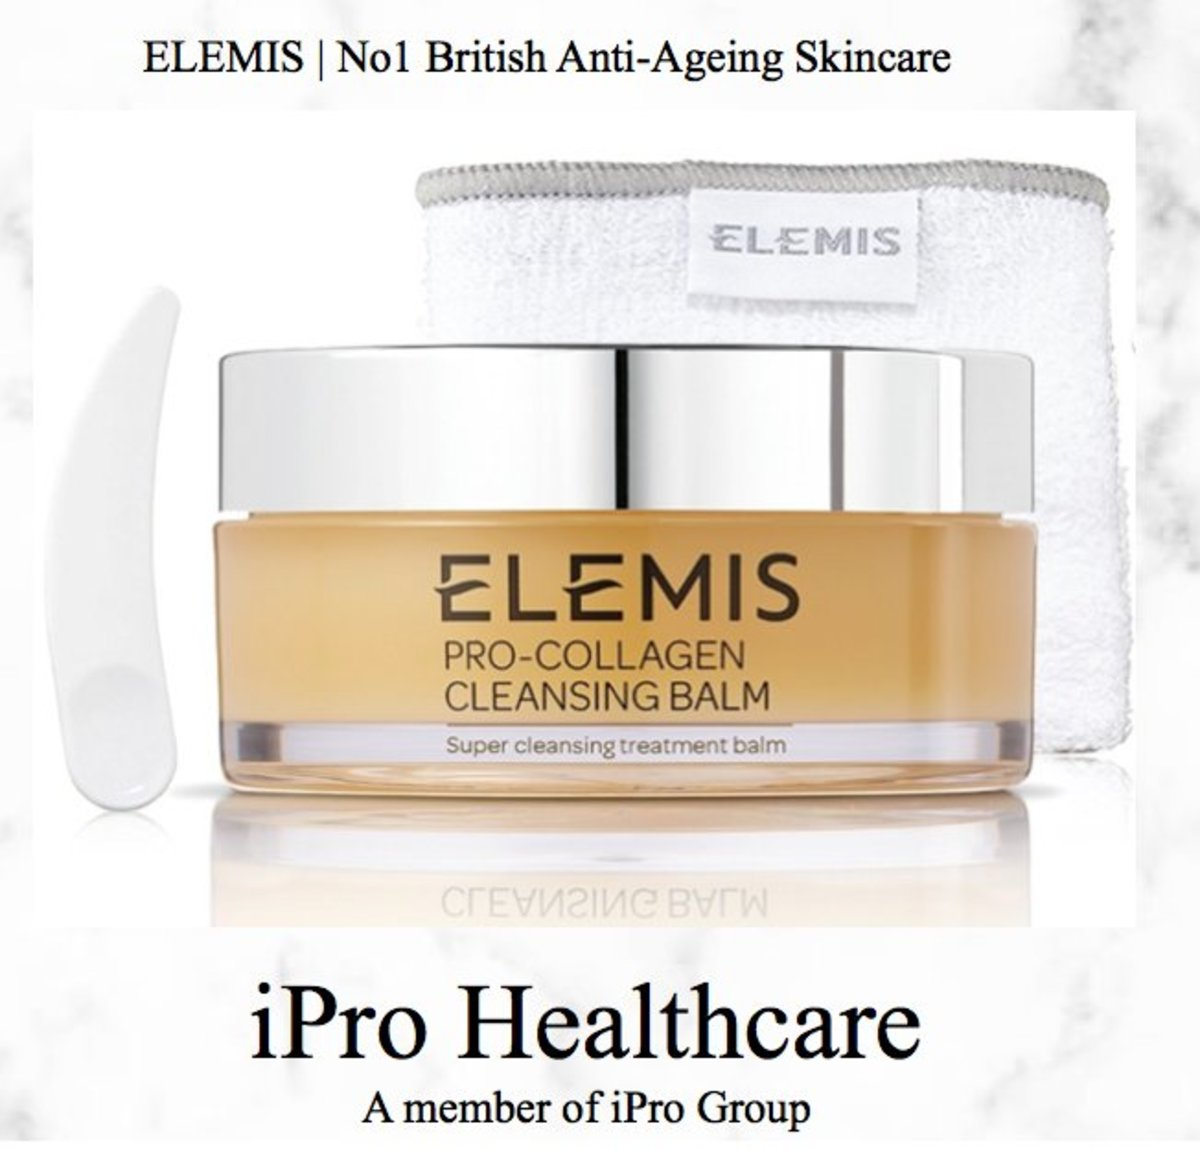 Elemis Pro-Collagen Cleansing Balm 105g (Parallel imported from and made in UK)